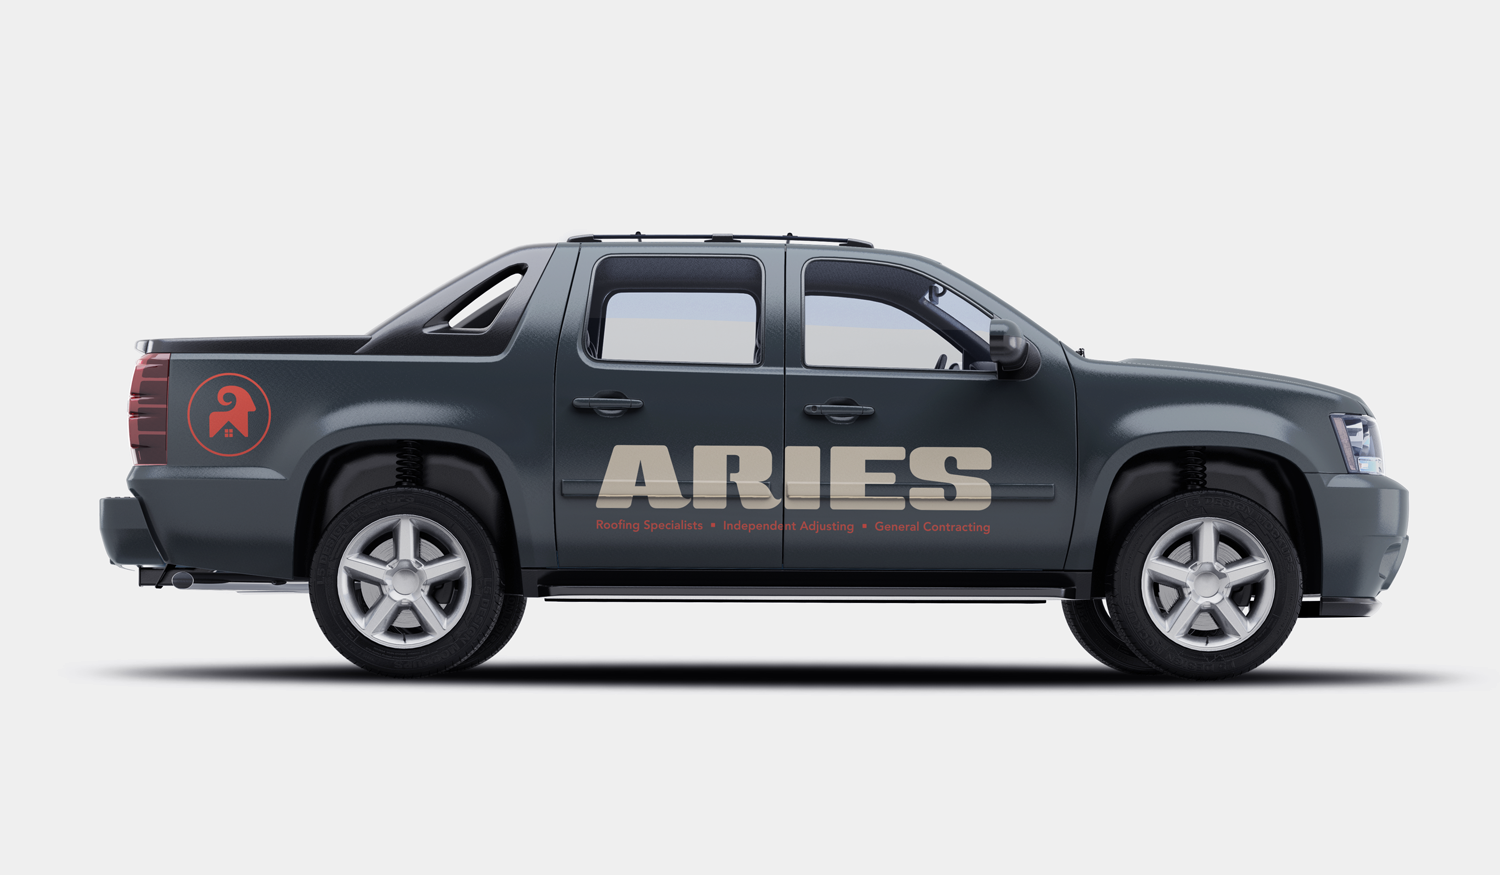 Aries visual identity truck wrap